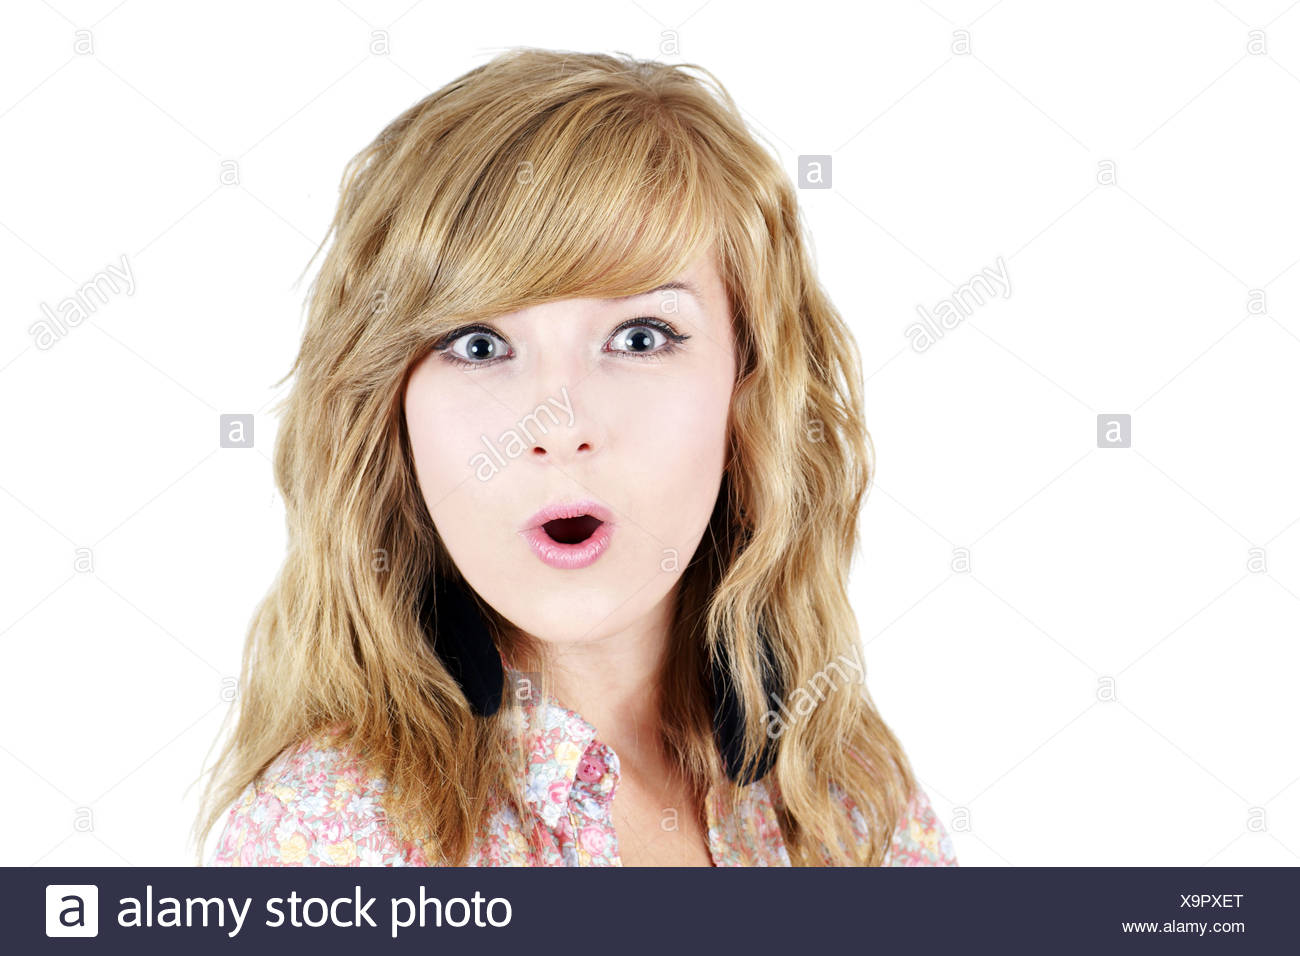 Surprised Young Blond Teenager Girl